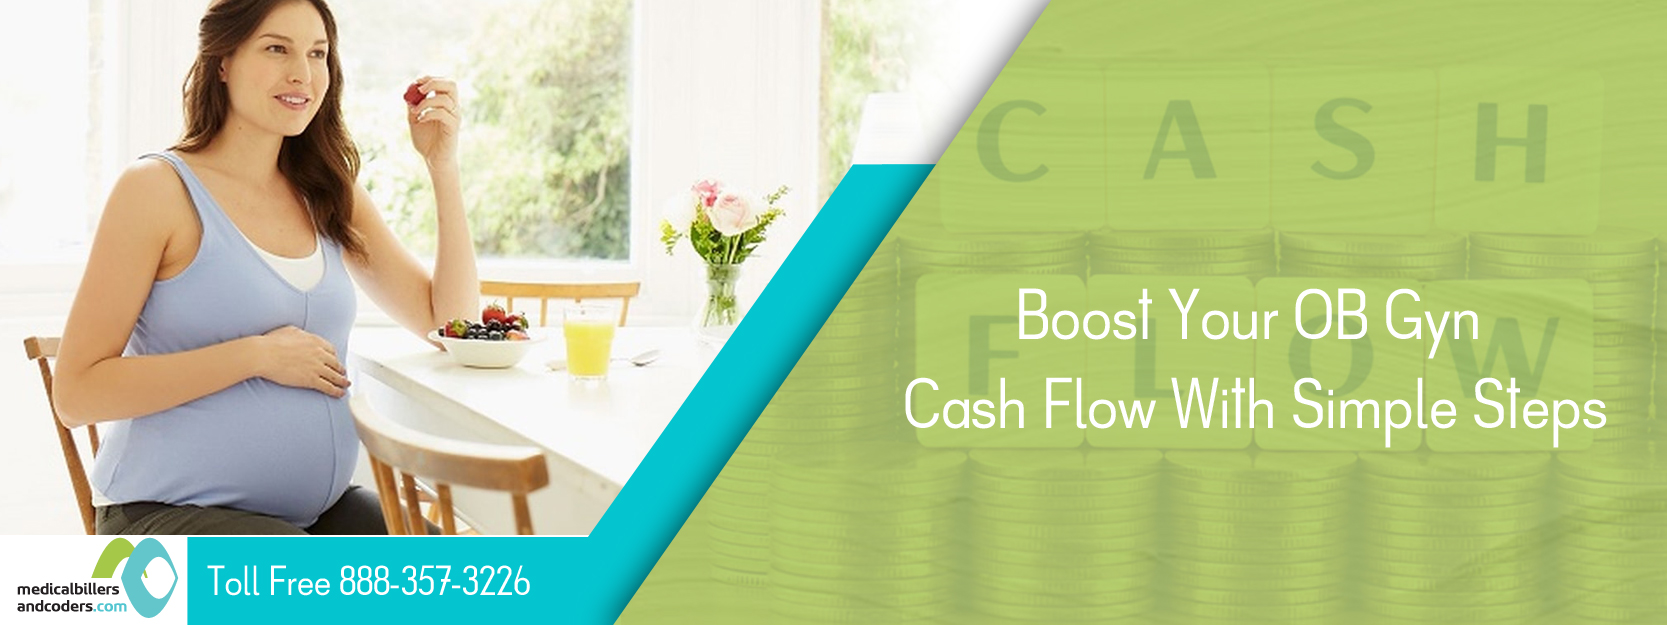 blog-boost-your-ob-gyn-cash-flow-with-simple-steps